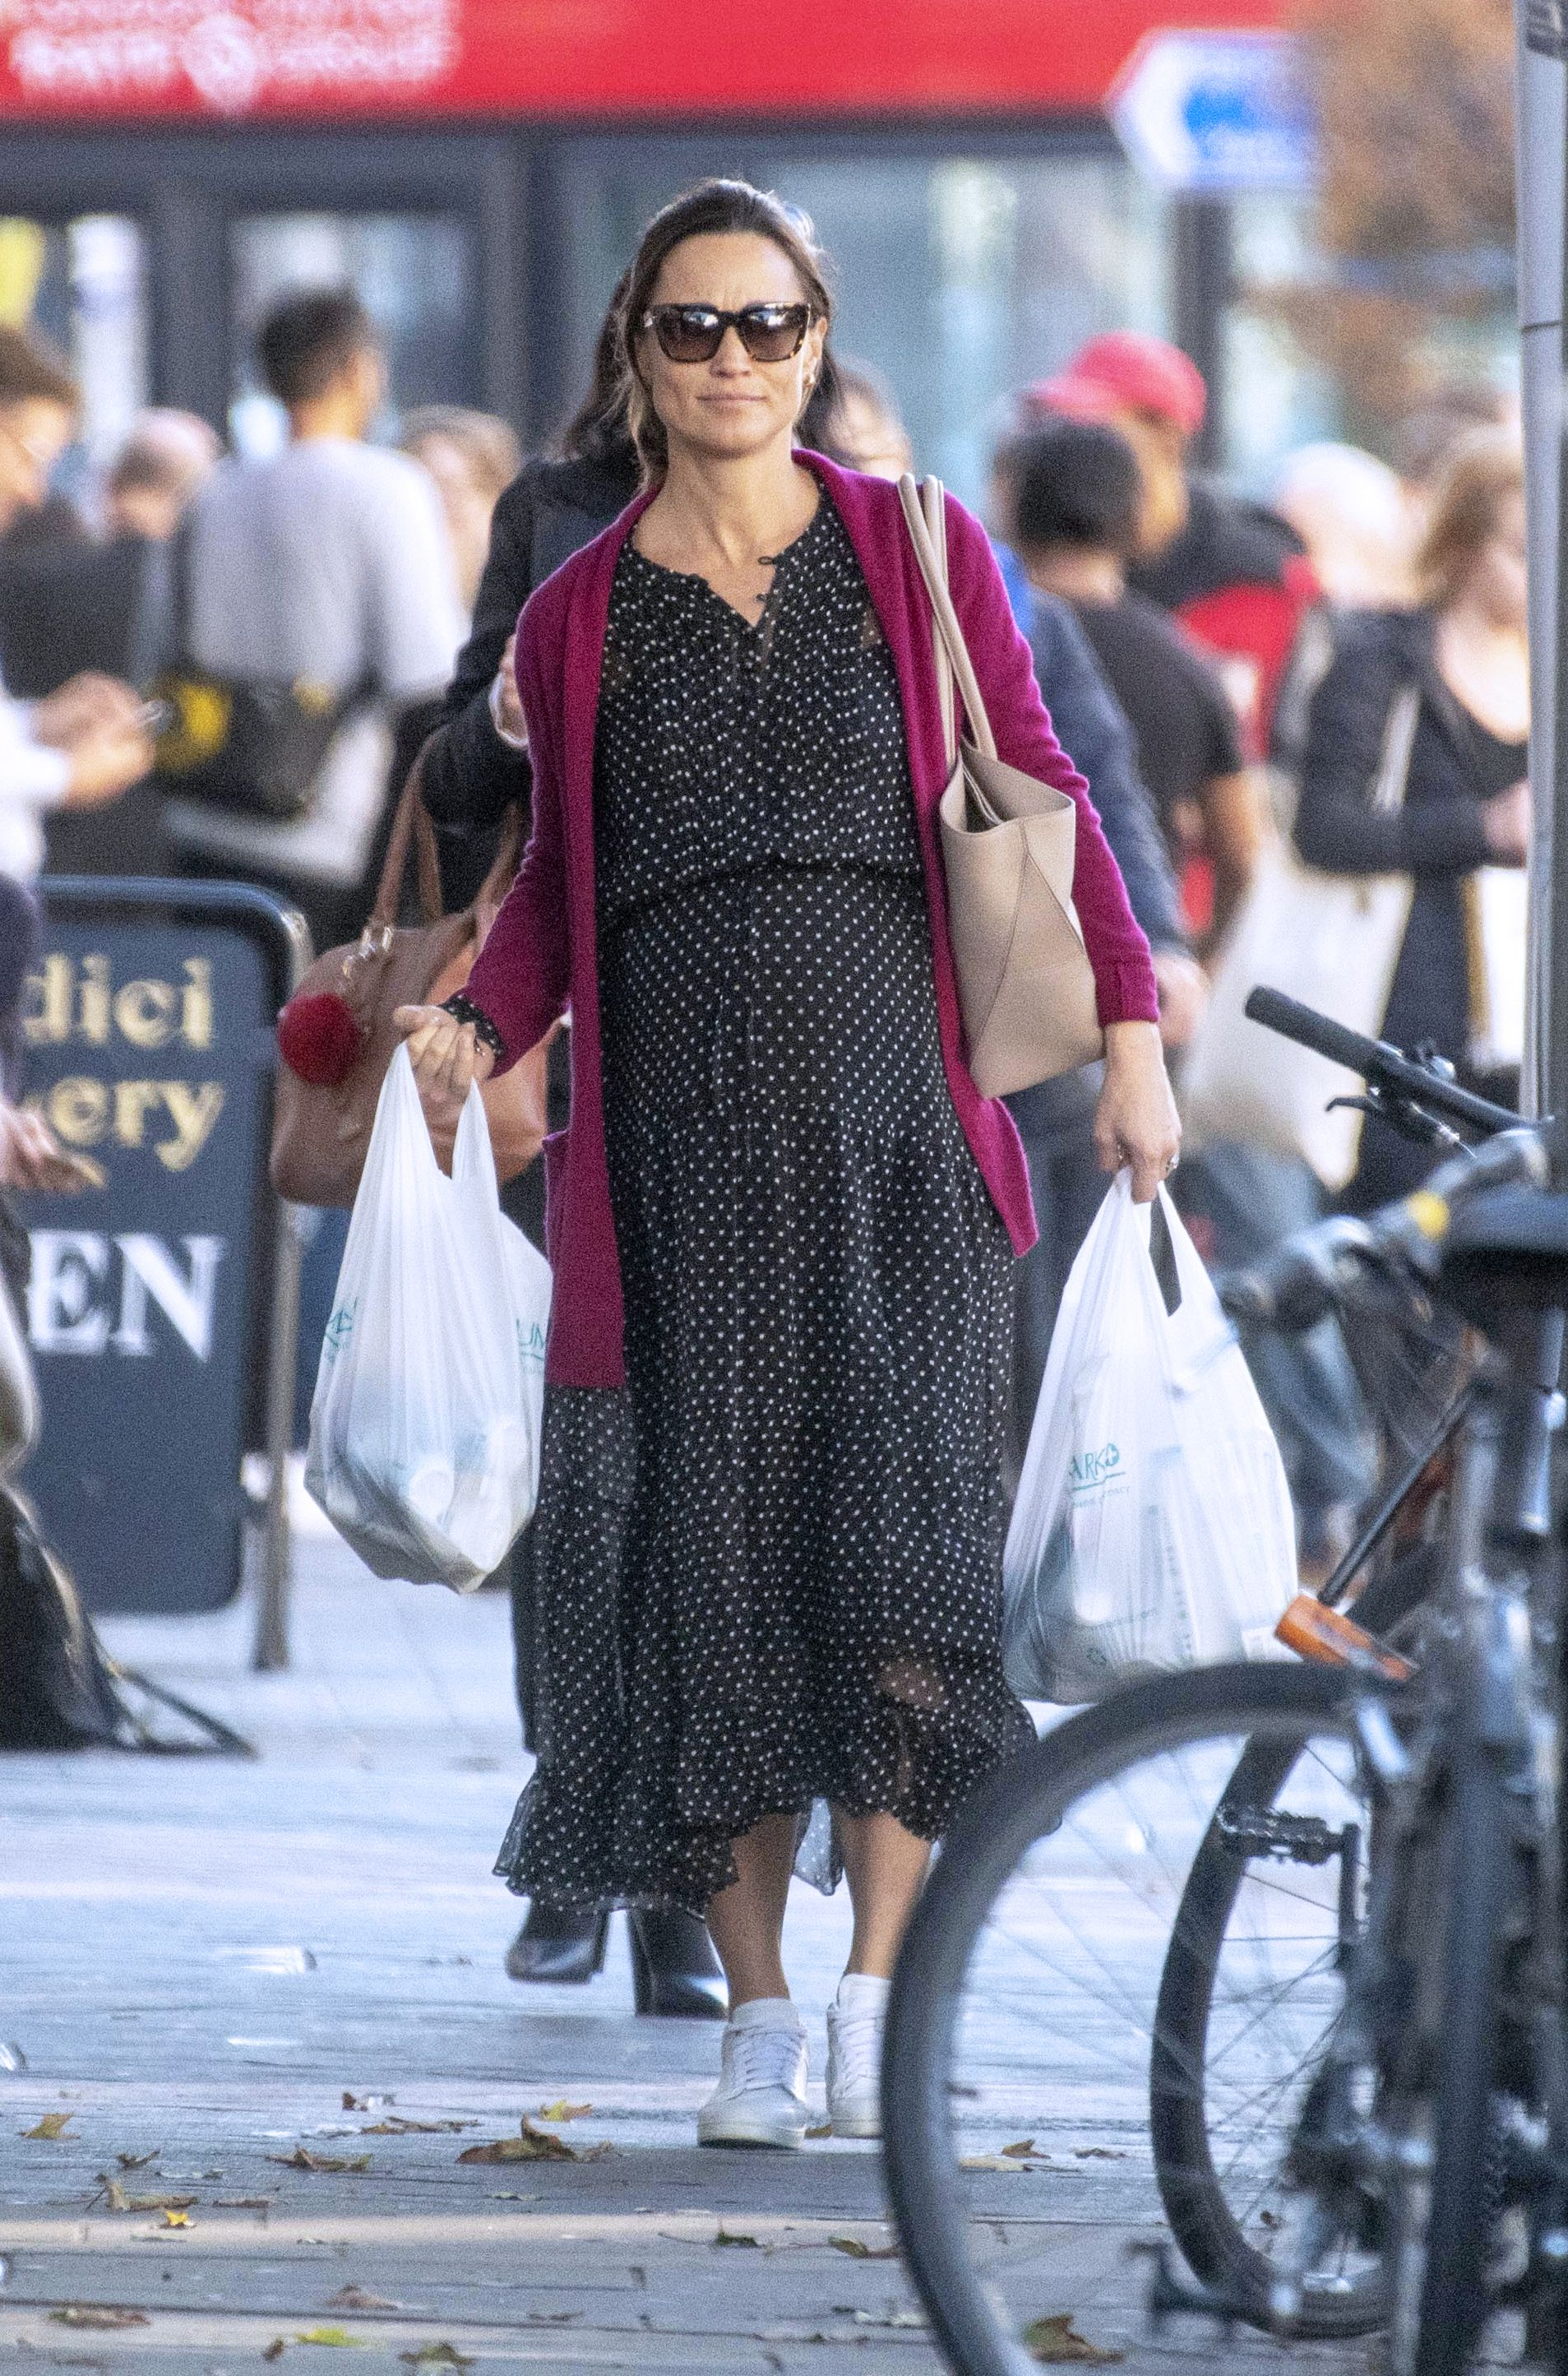 c385ffc21a74d Pippa Middleton Wore an Adorable Polka Dot Dress While Out Grocery Shopping